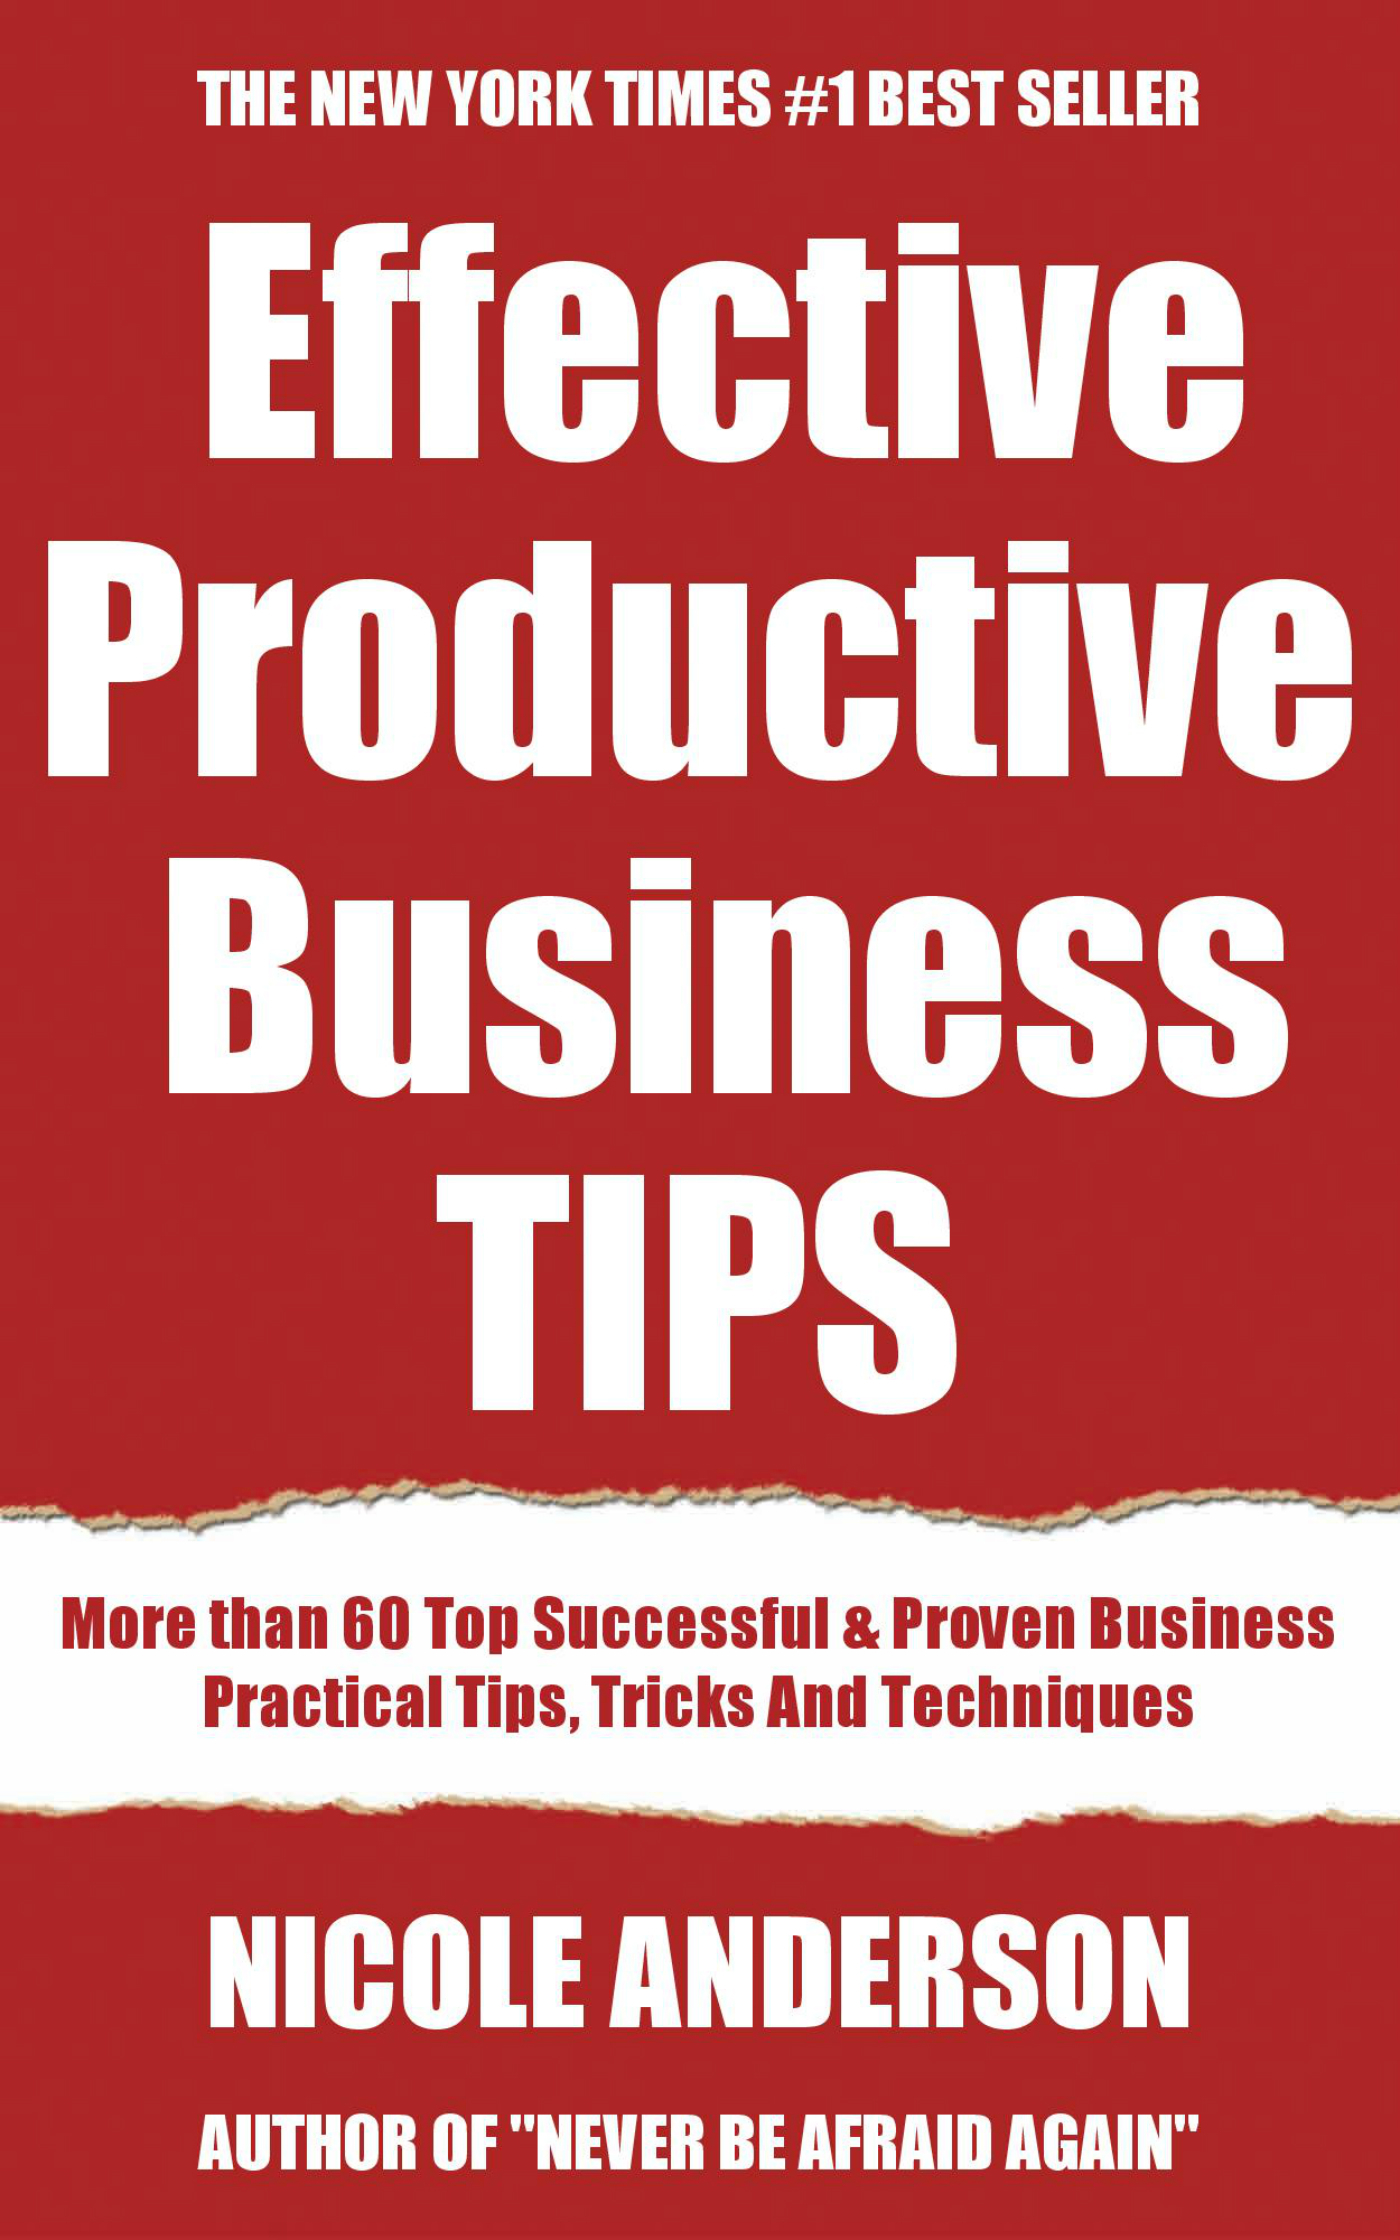 Smart Effective & Productive Business Tips: More than 60 Top Successful & Proven Business Practical Tips, Tricks, Techniques and Strategies to be More Productive & Effective Than Ever Before